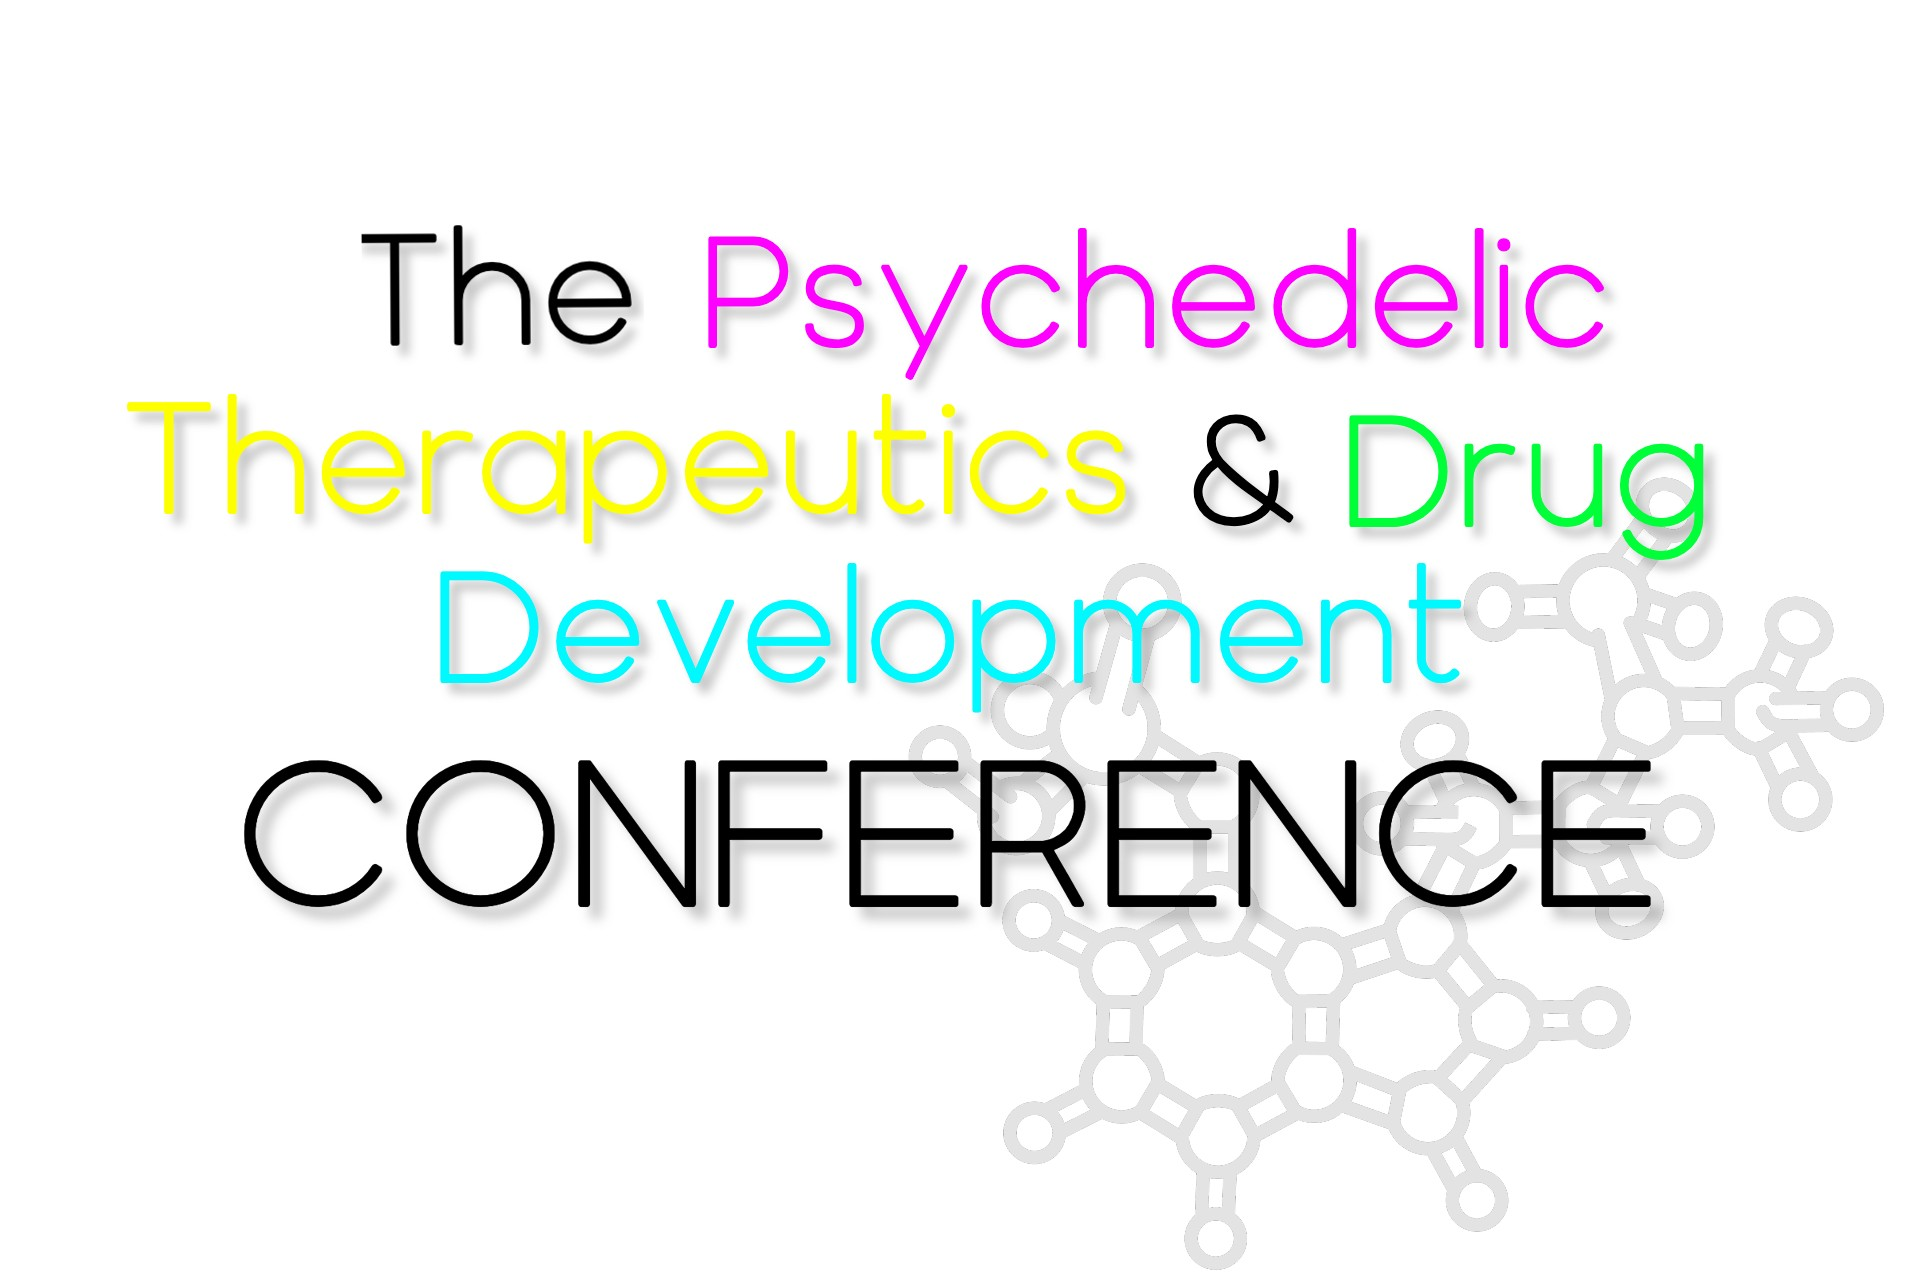 Psychedelic Therapeutics and Drug Development Conference